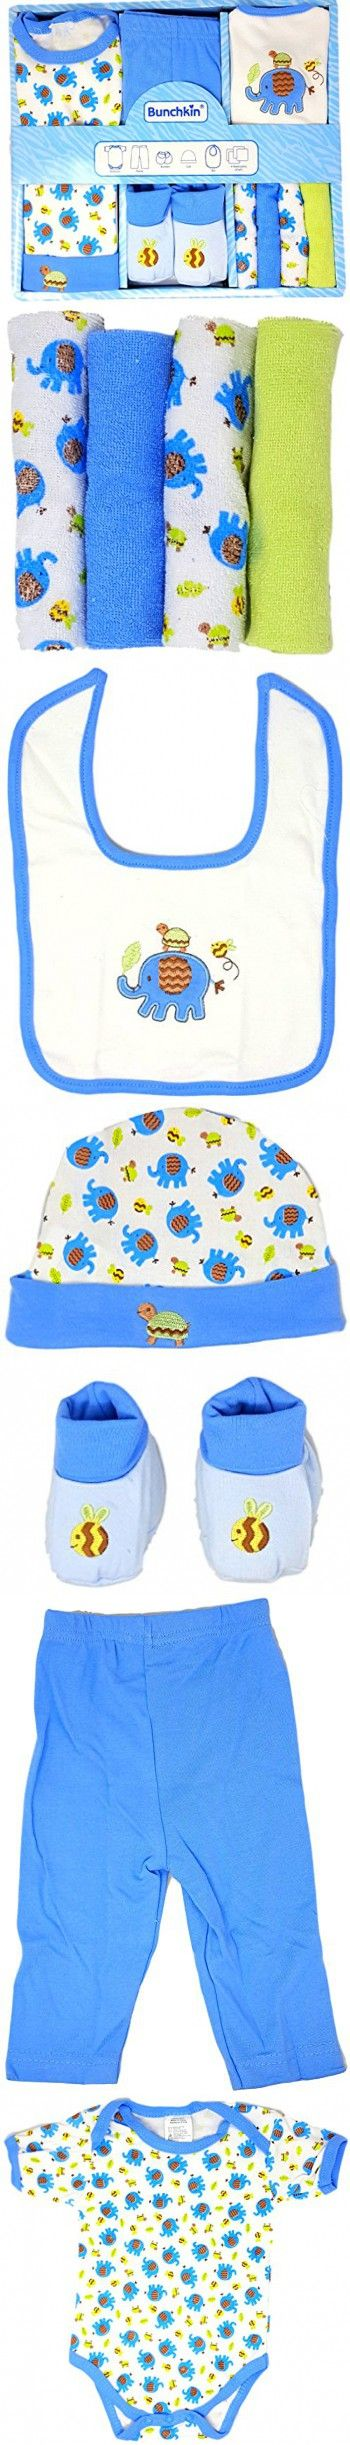 Gift Baby Shower Boy This 9 Piece Baby Boy Gift Set (0-6 mos) is 100% Cotton and Includes a Blue Baby Onesie, Blue Pants, Blue Booties, Blue Cap, Blue Bib, and 4 Baby Washcloths(80% Cotton)